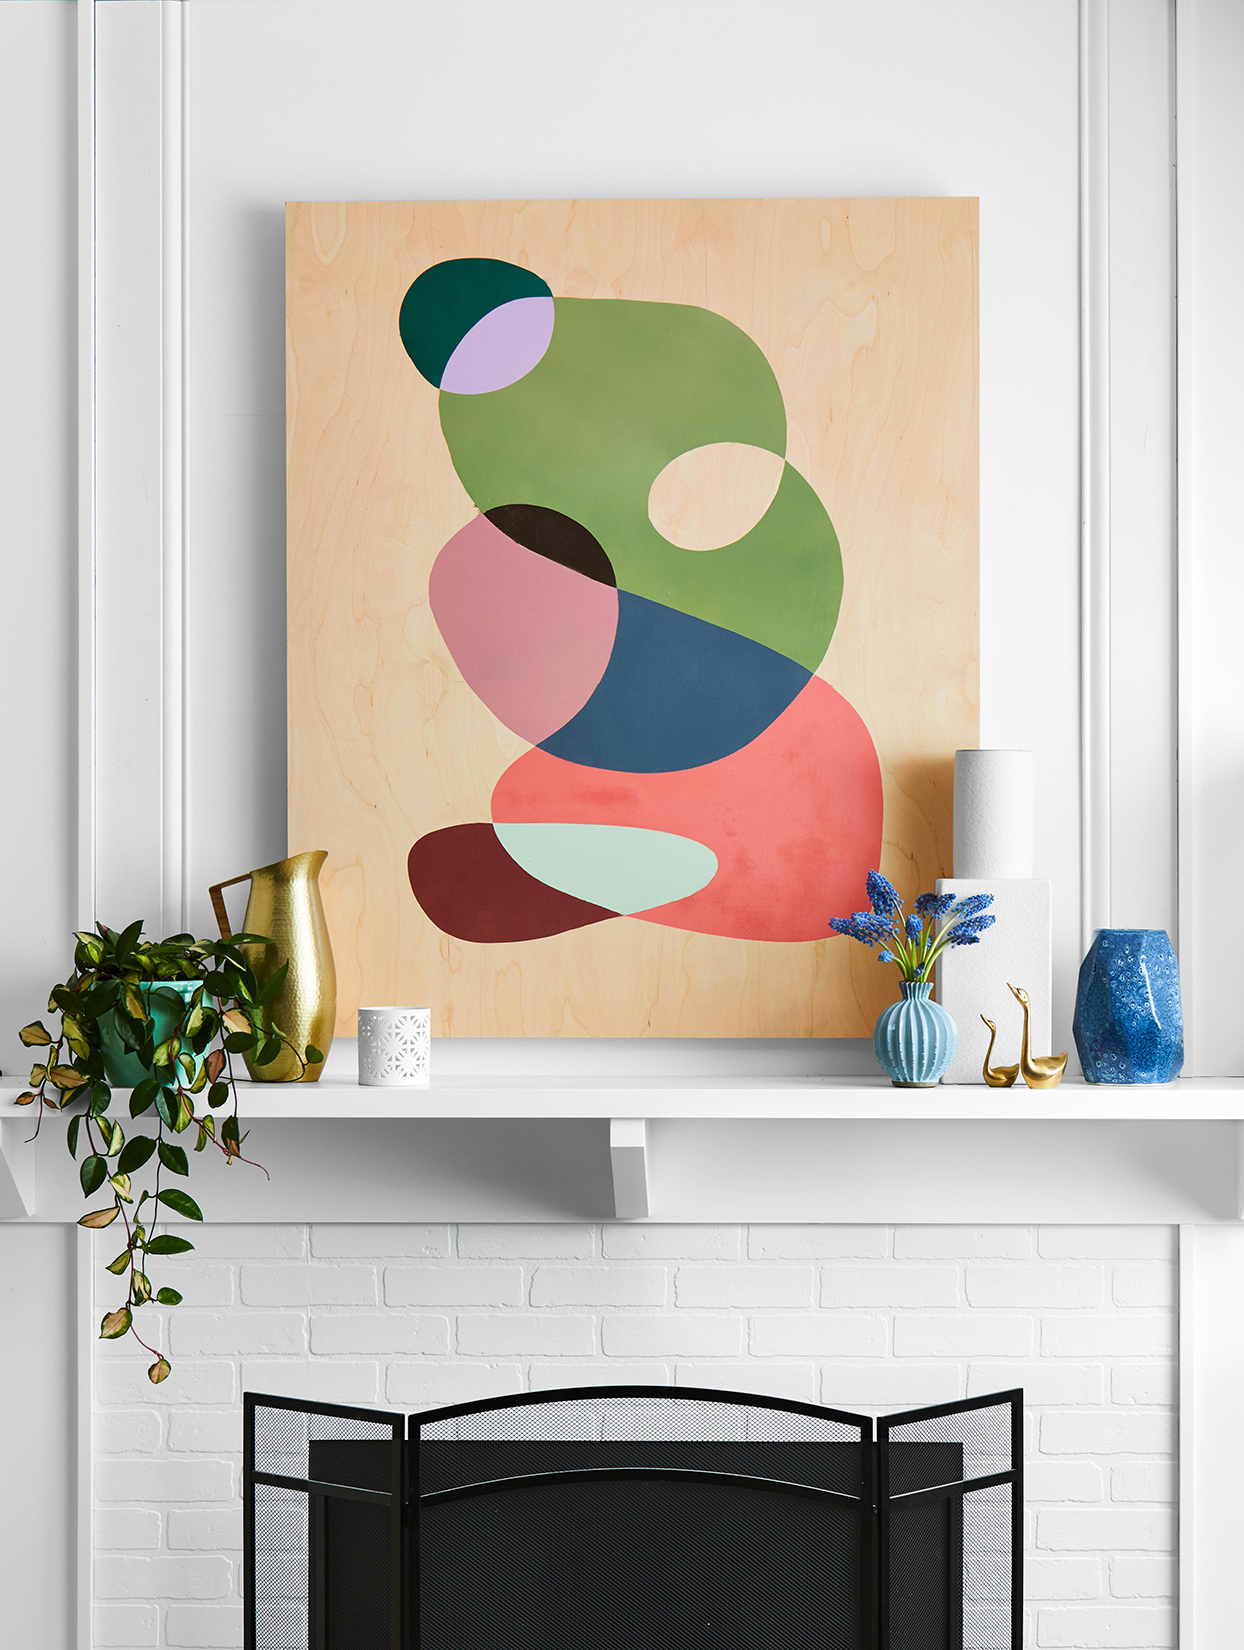 2020 Diy Wall Art Projects That Are Surprisingly Affordable Within Blended Fabric Hello Beauty Full Wall Hangings (View 10 of 20)